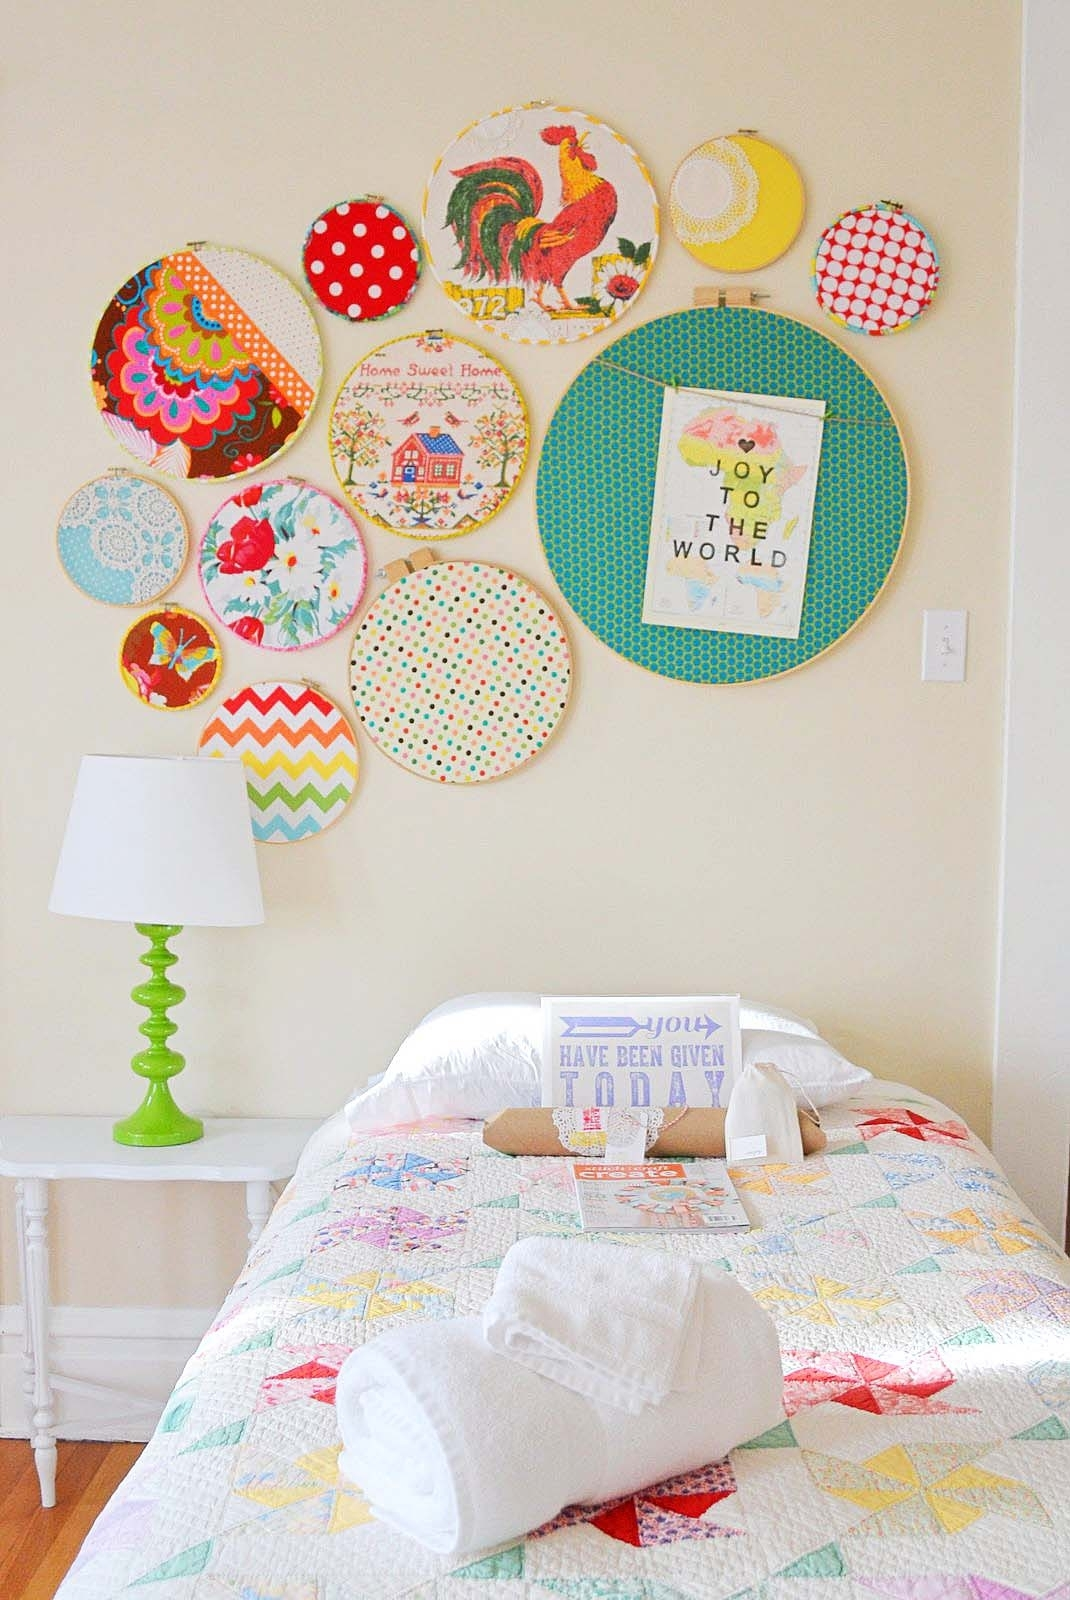 What's All The Hoopla About? – Project Nursery Intended For Most Current Fabric Hoop Wall Art (Gallery 1 of 15)